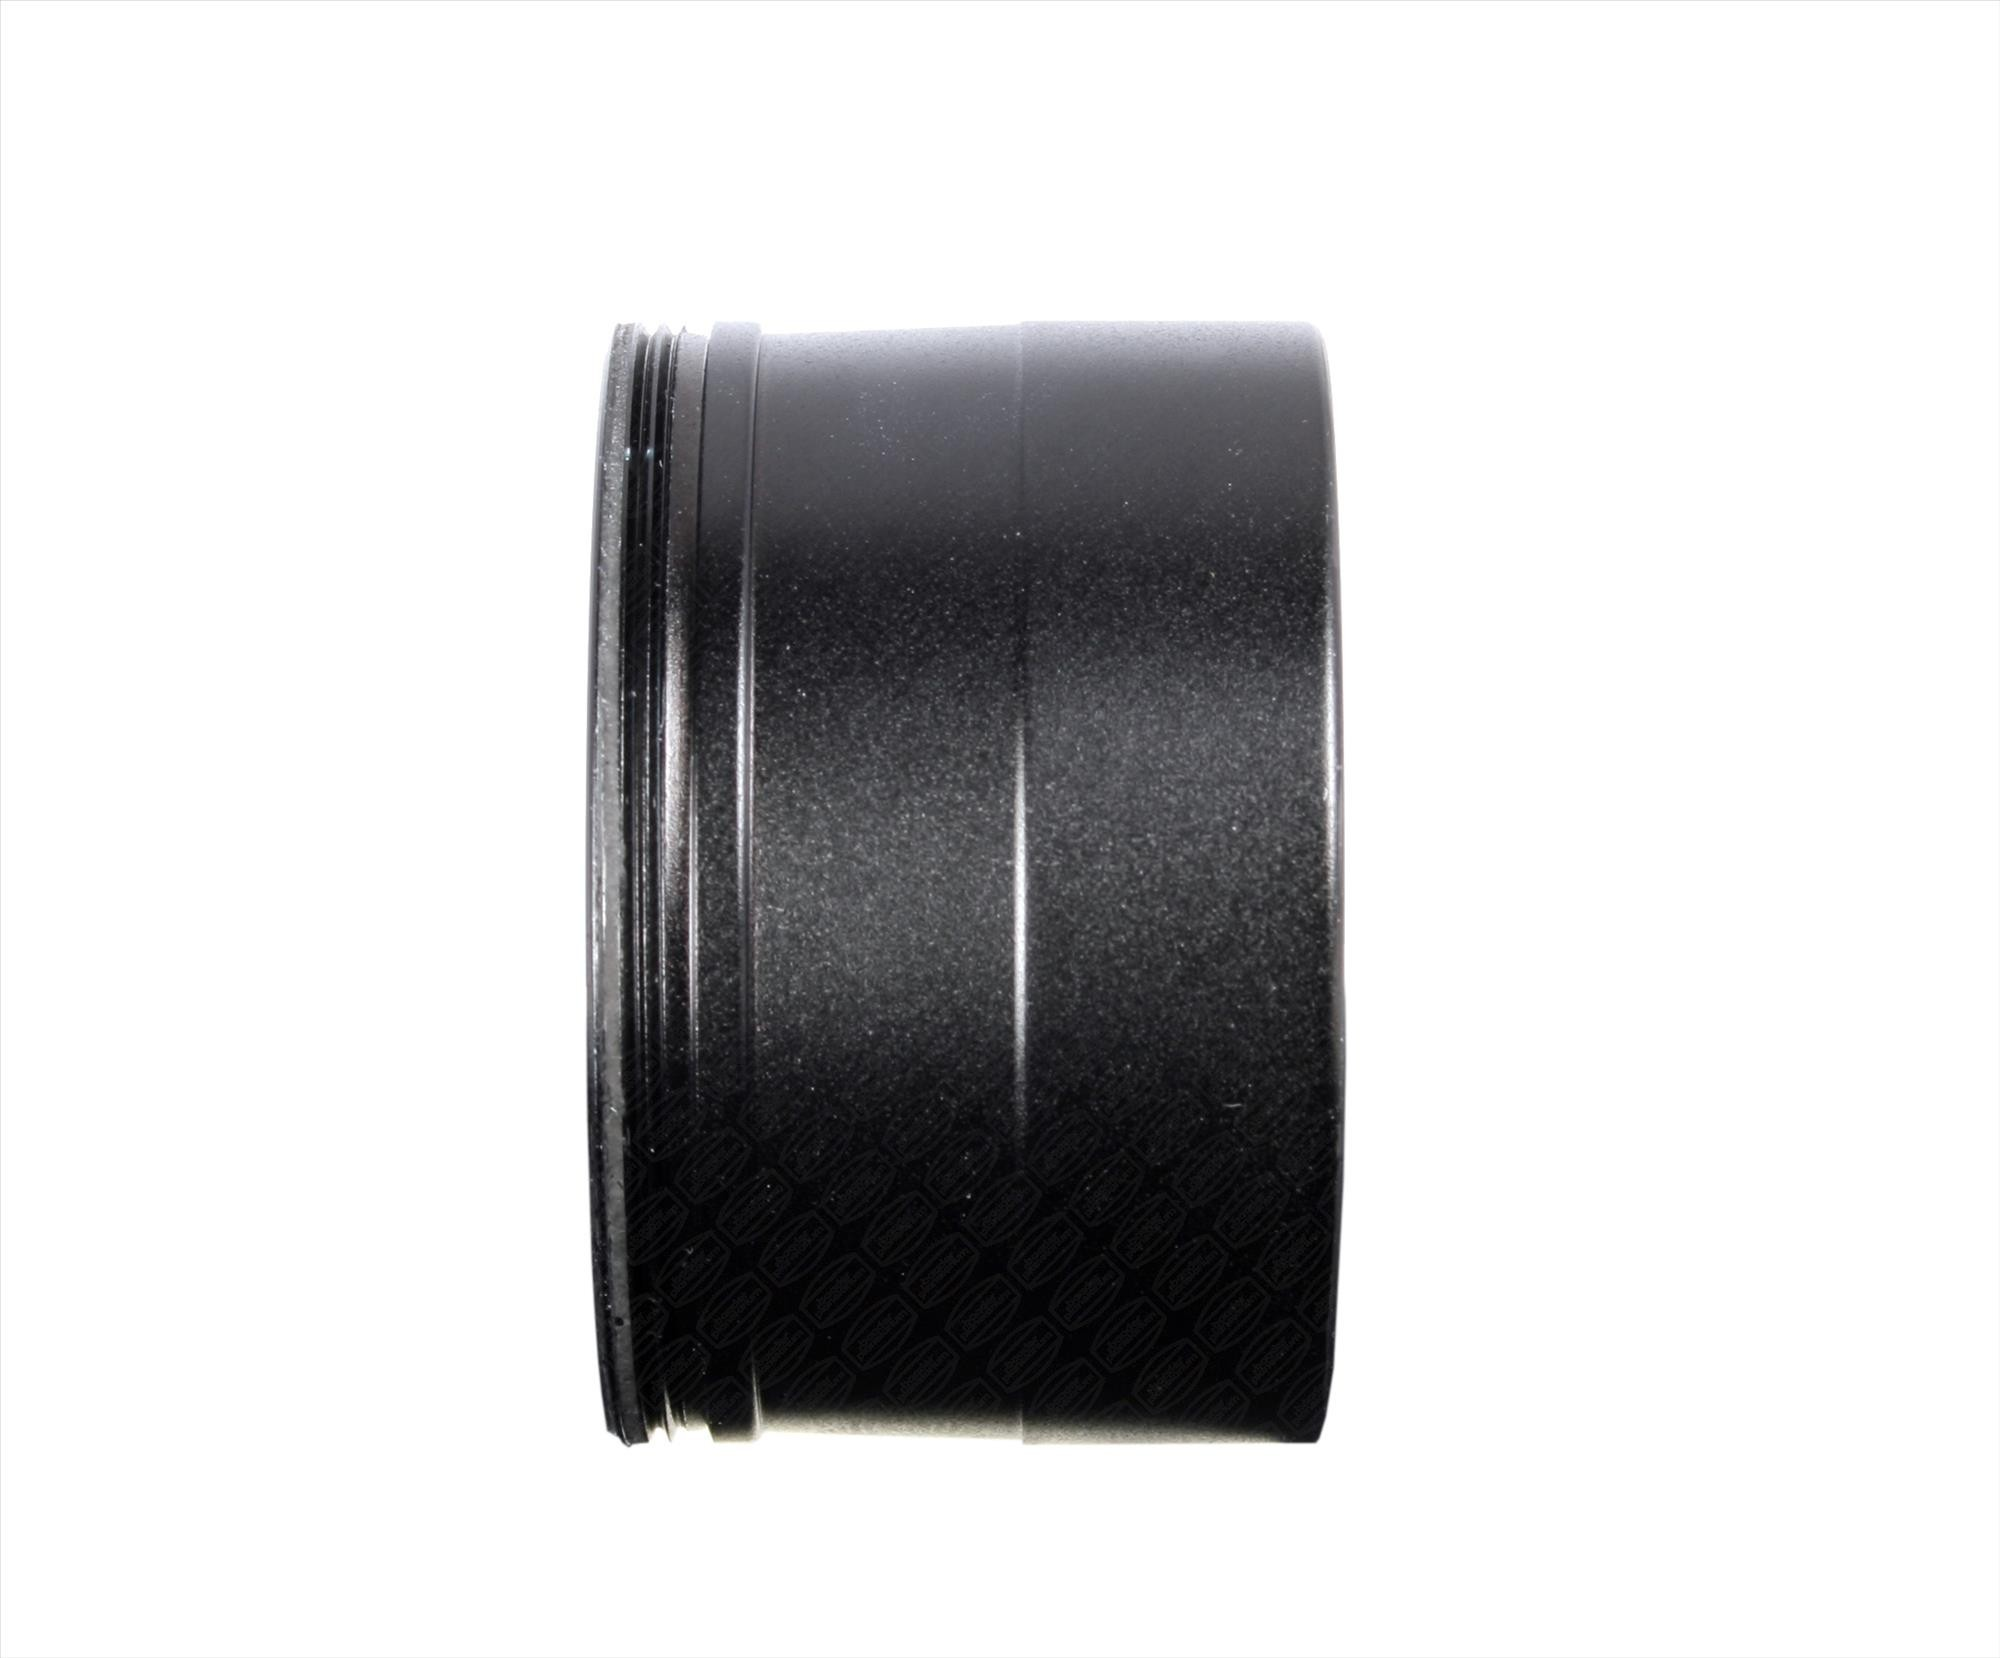 2'' Sleeve with 2'' Filter thread (mounts onto any 2'' female thread)